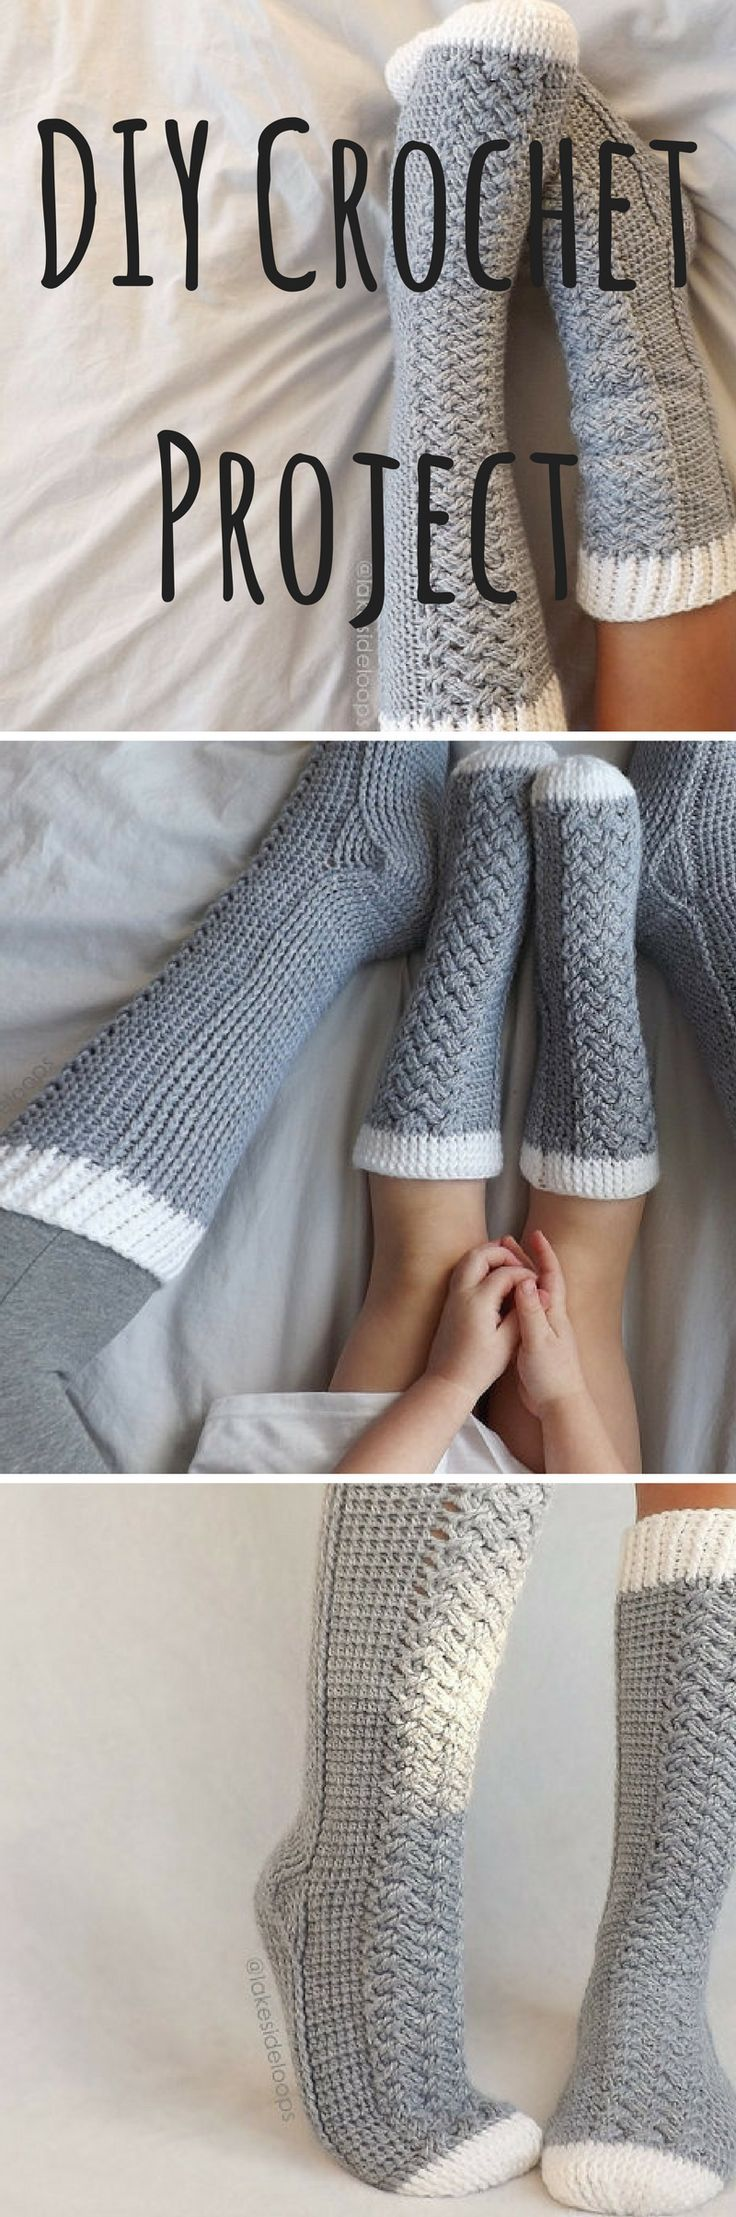 This Crazy Cozy Crochet Cable Sock Pattern Makes 11 Different Sizes